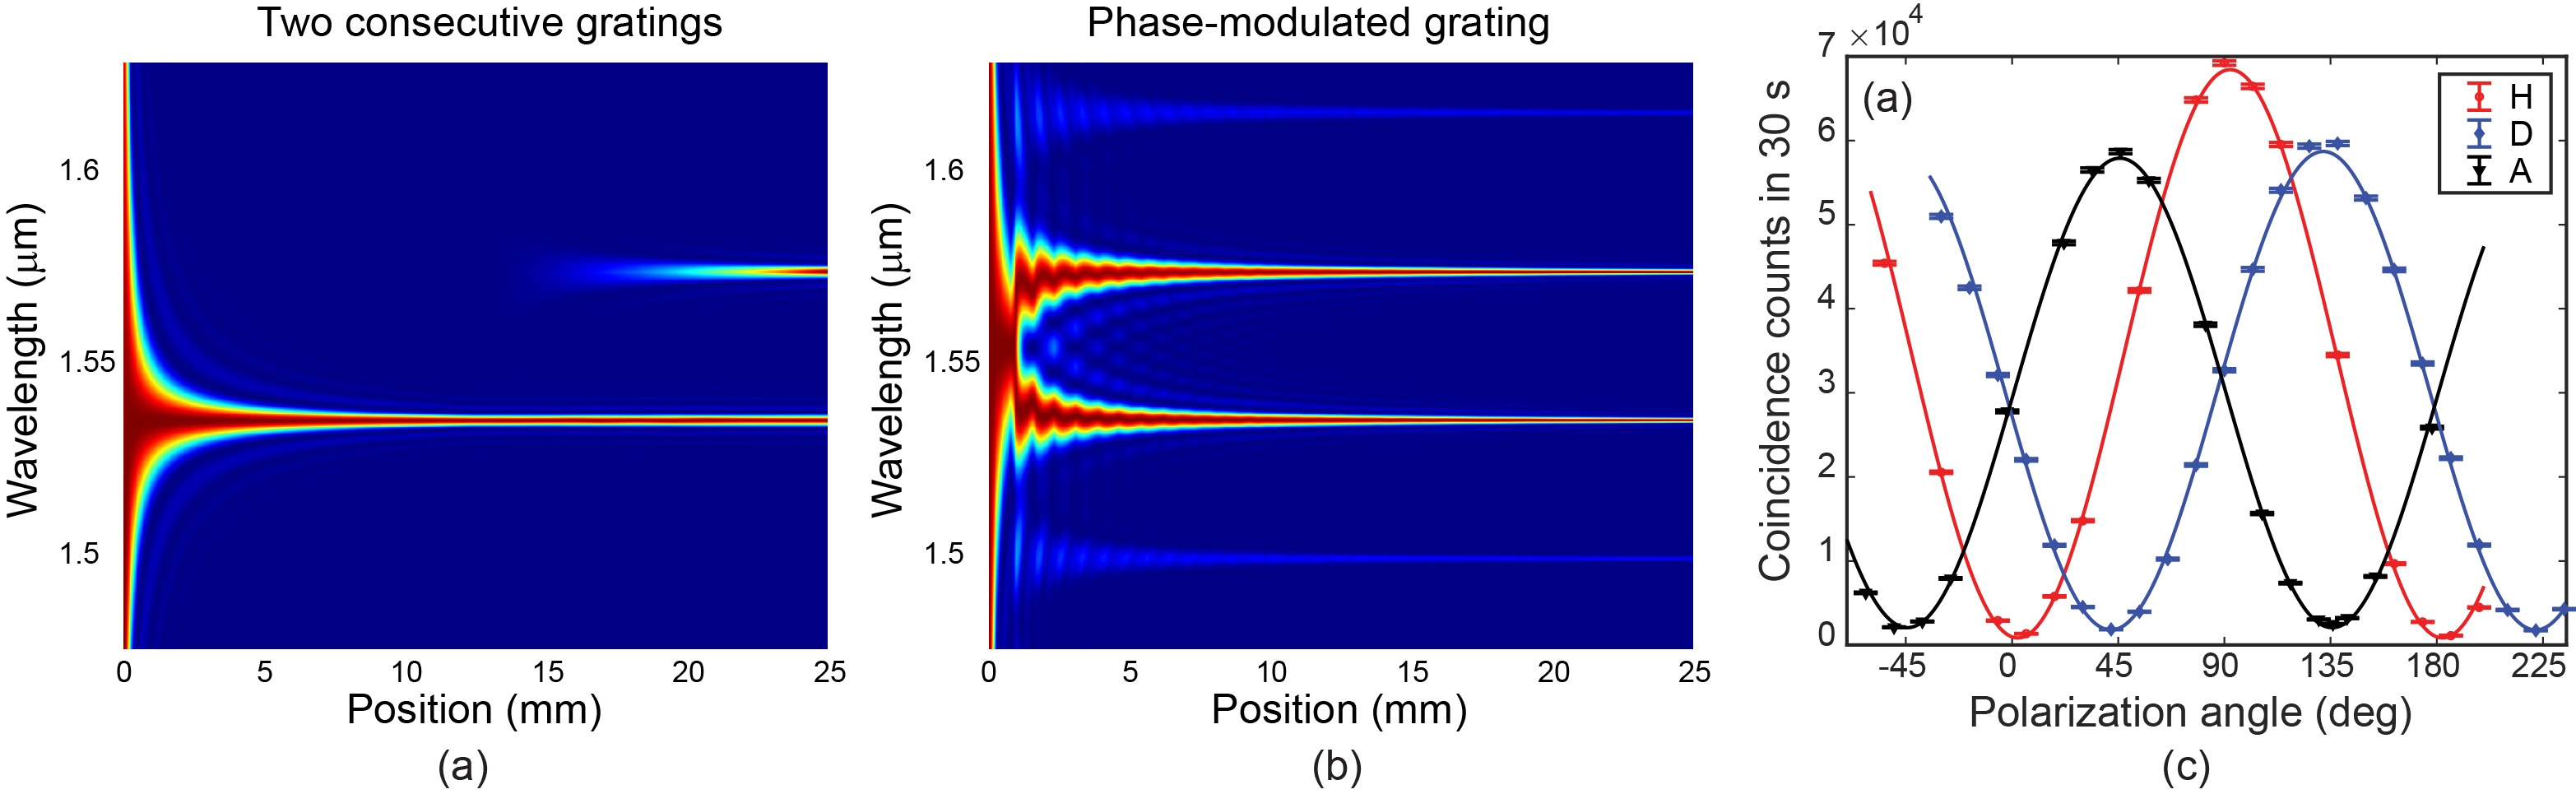 Figure 4. Normalized SPDC intensity of the horizontally polarized beam for (a) two consecutive PPLN gratings and (b) a phase-modulated grating. In the latter, both downconversion processes occur simultaneously in a distributed fashion throughout the crystal. (c) Fixing the 1569 nm photon polarization to horizontal (H), diagonal (D) or anti-diagonal (A), we observed the coincidence counts while rotating a polarizer placed before the detector for the 1530 nm photons. There is good polarization entanglement vi